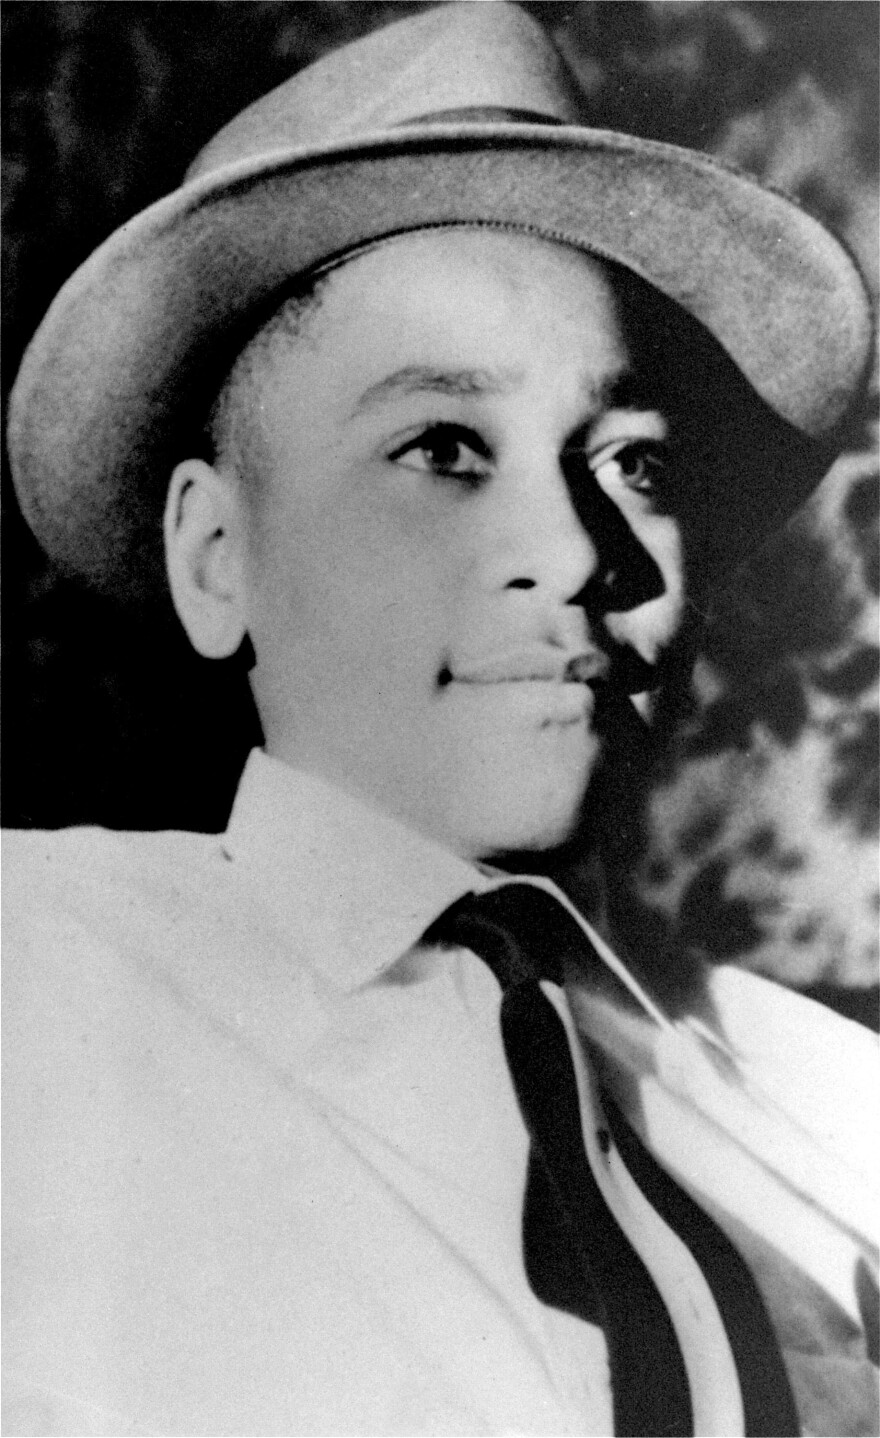 The body of Emmett Louis Till, a 14-year-old Chicago boy who was visiting relatives, was found in the Tallahatchie River near Money, Miss., on Aug. 31, 1955.